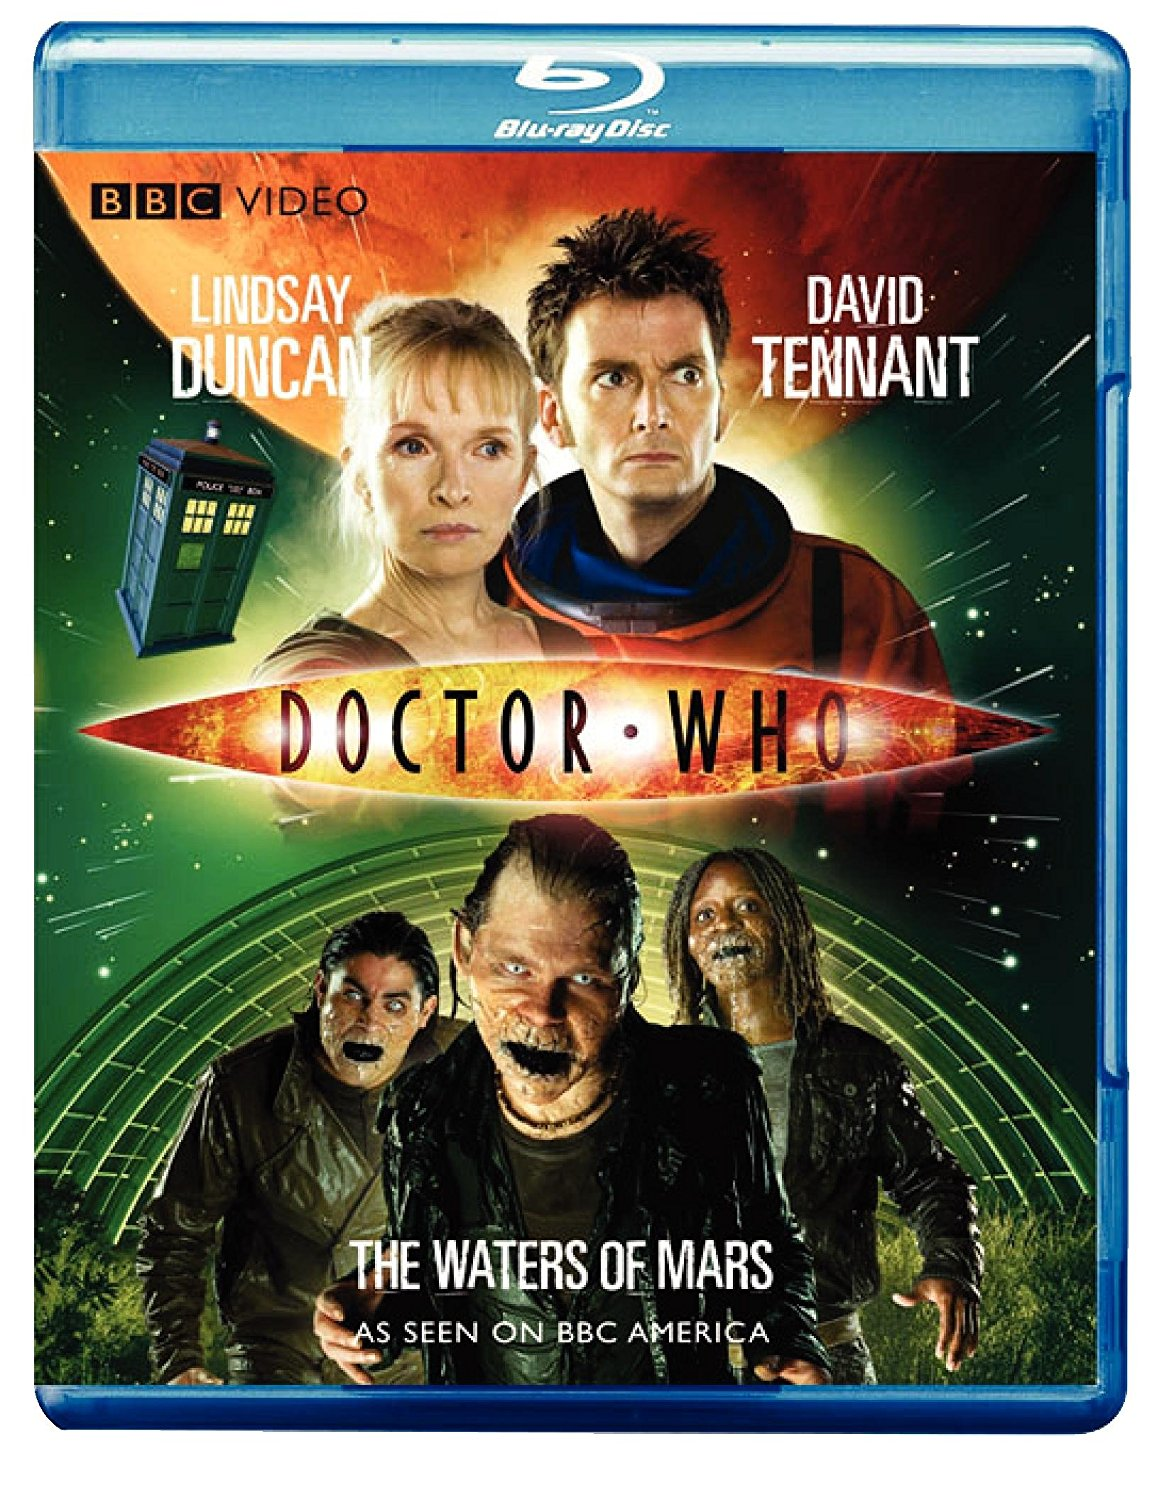 """Doctor Who - The Waters of Mars"" bluray."